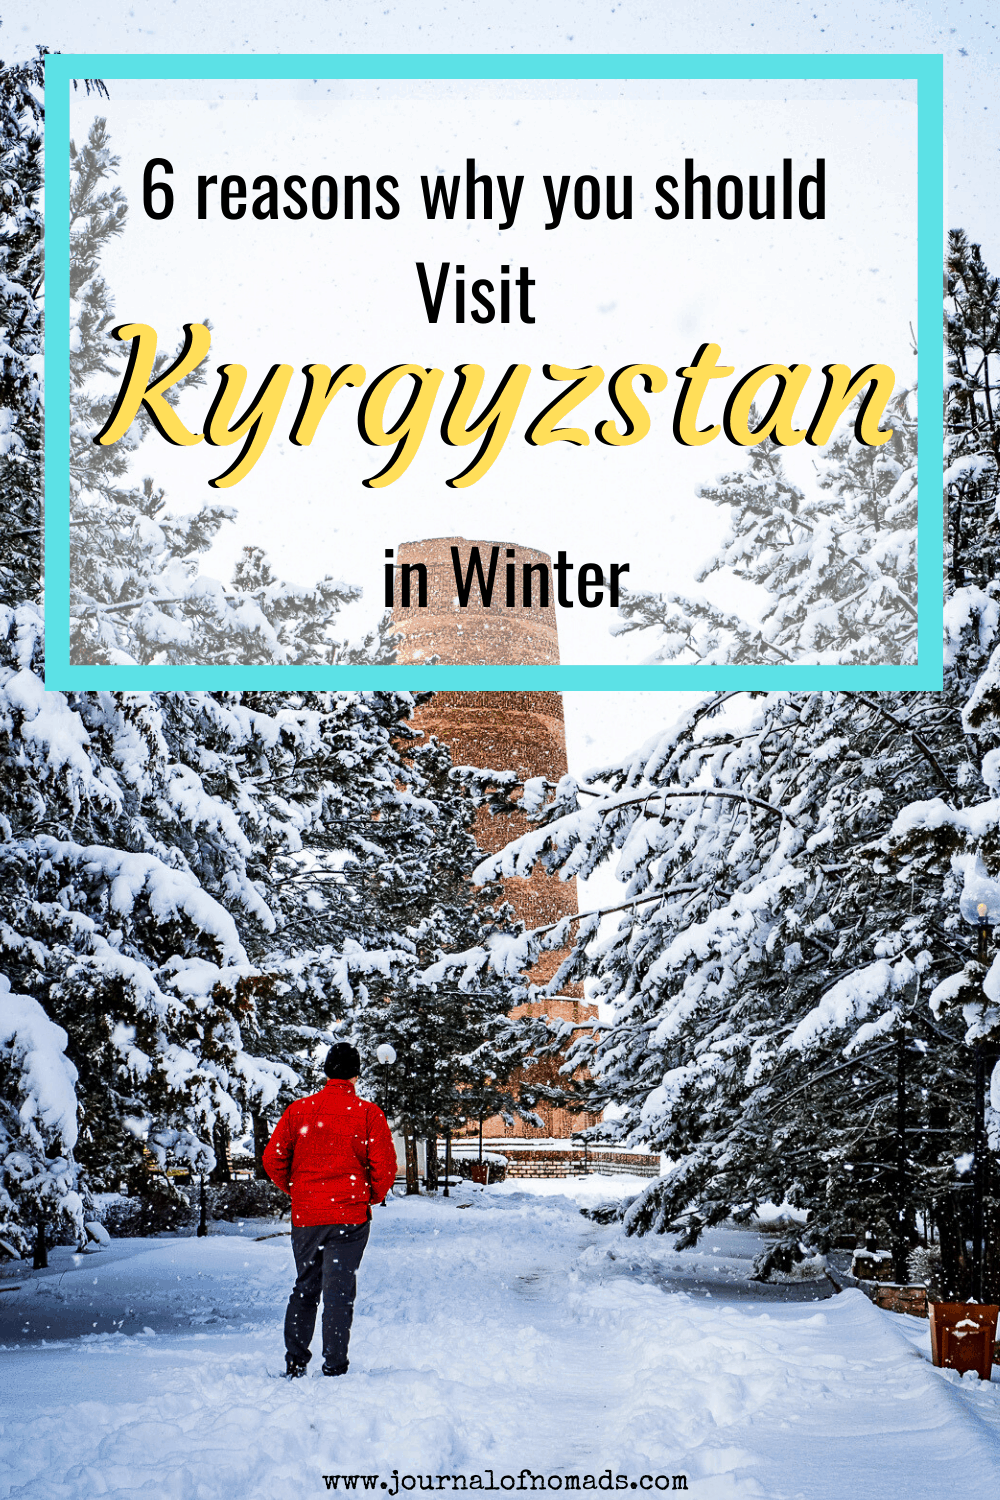 reasons why you should visit Kyrgyzstan in winter